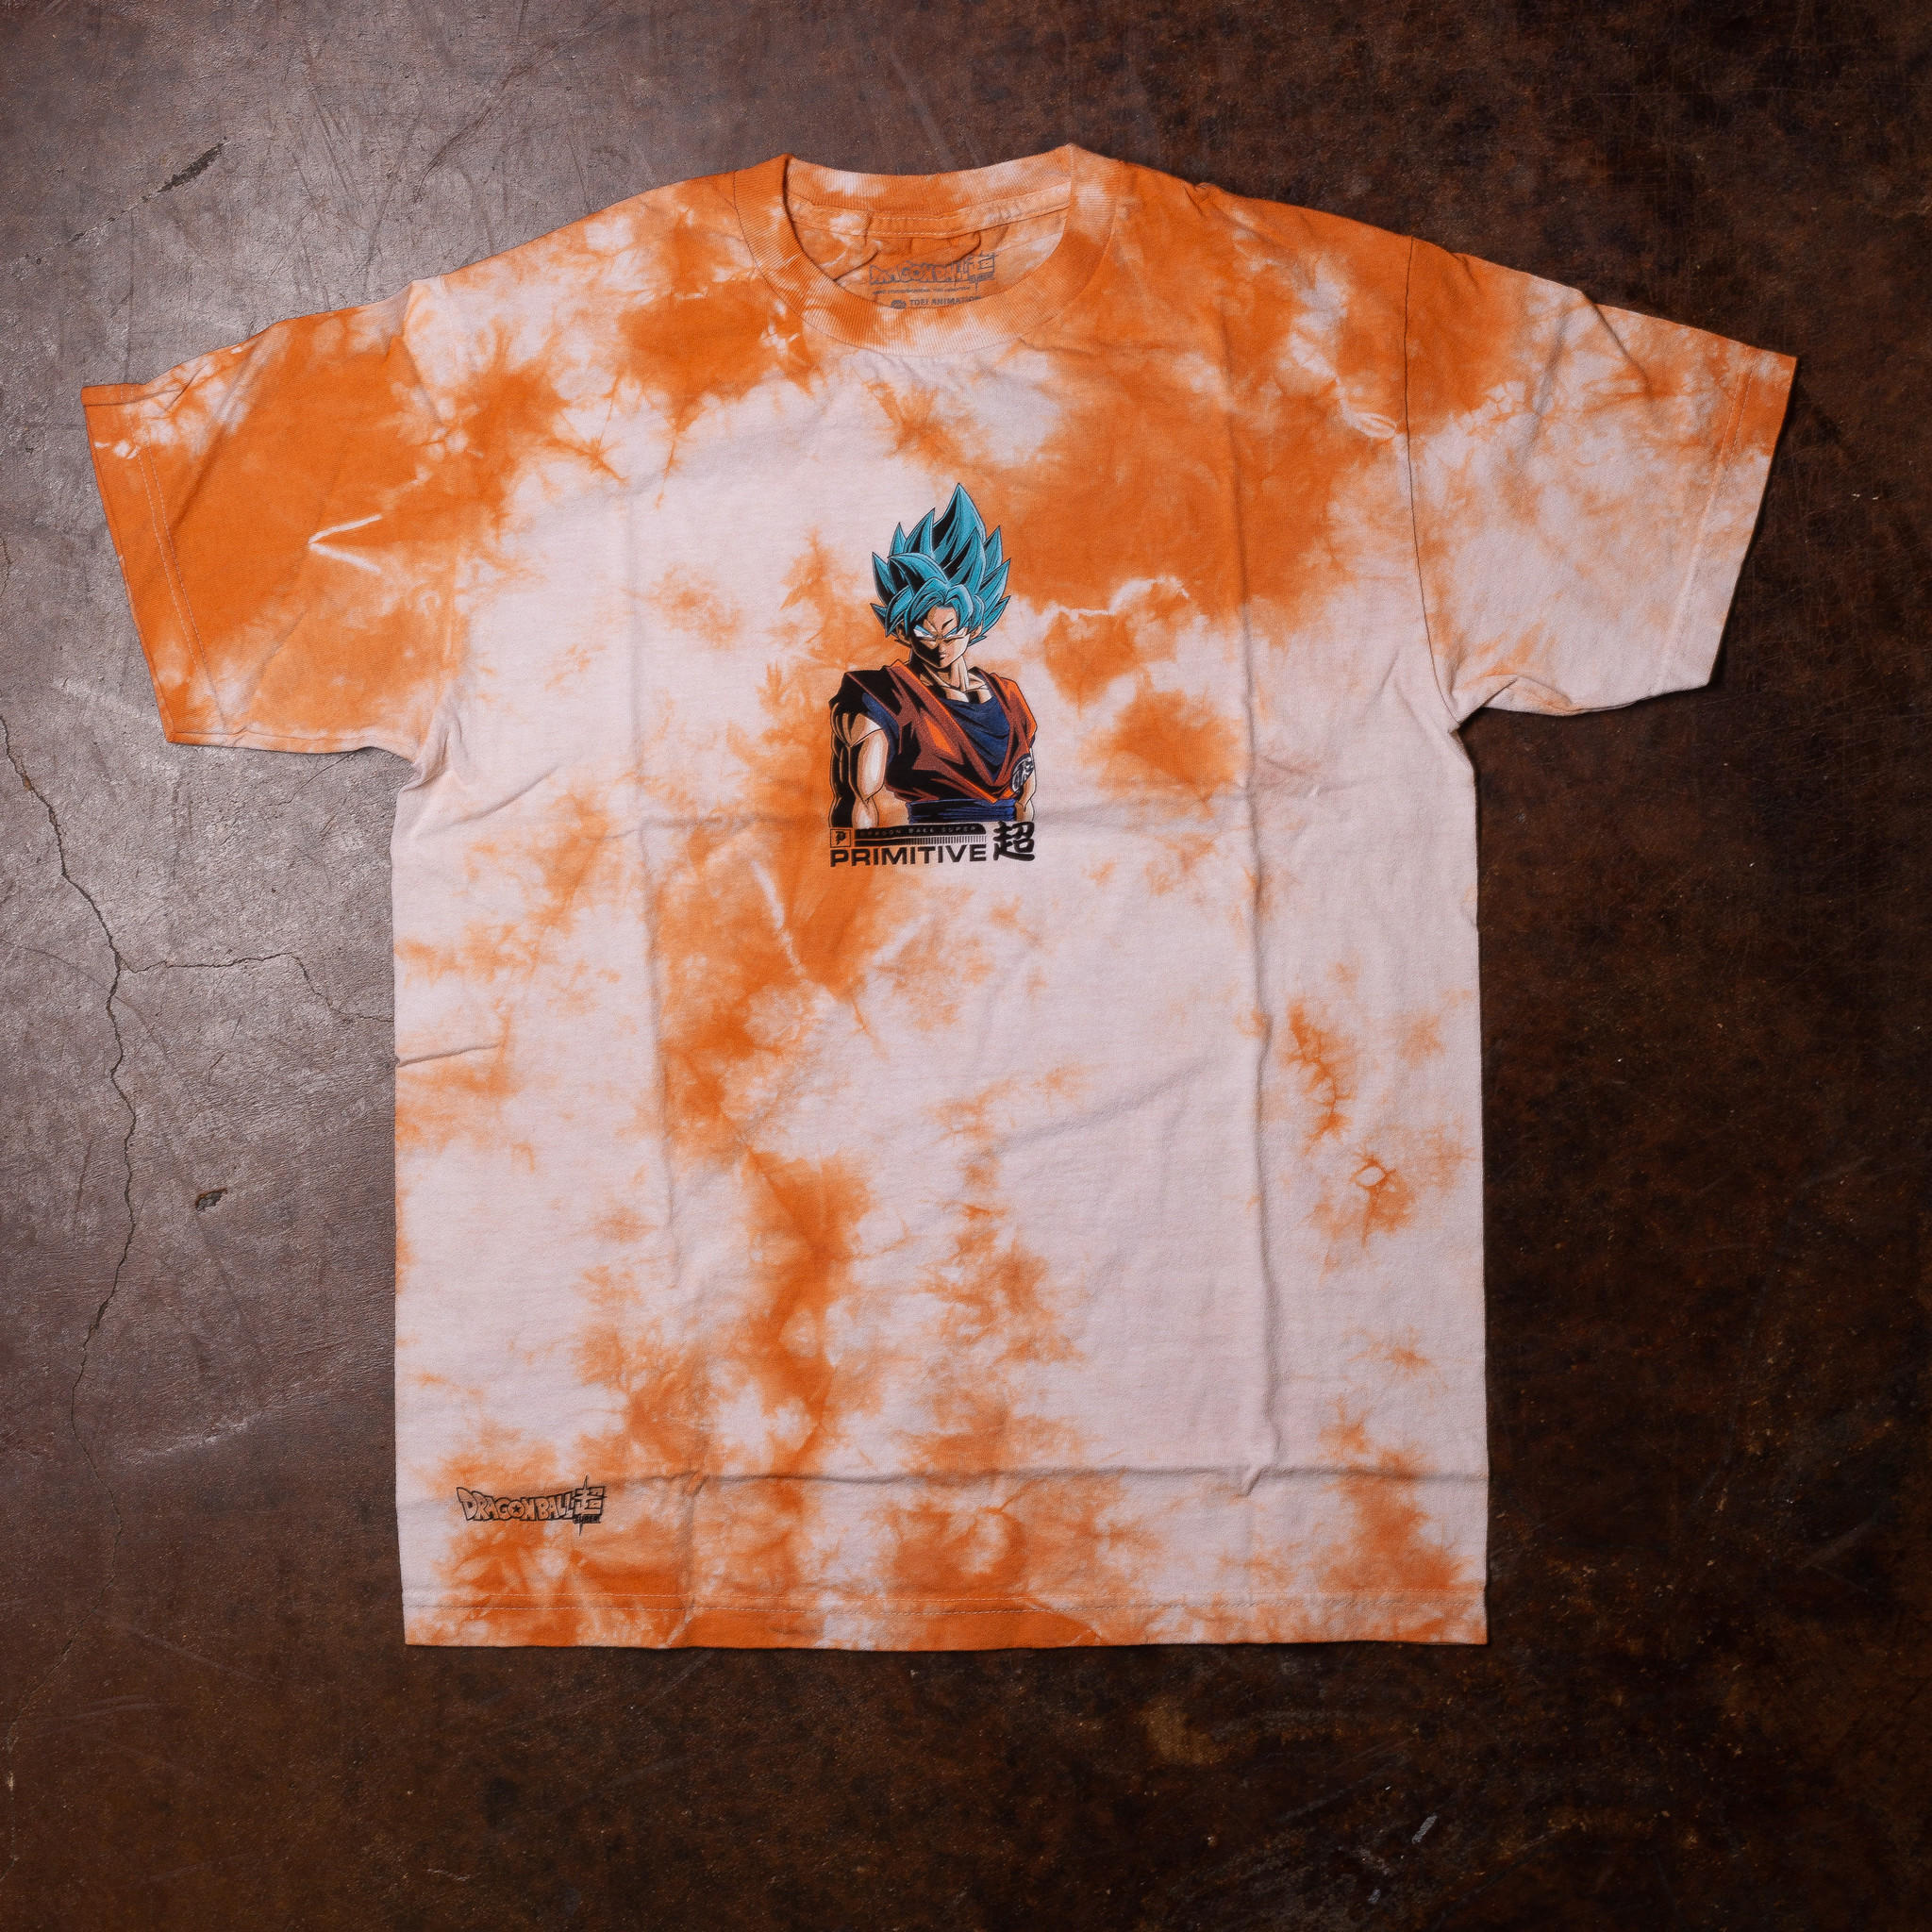 Primitive Shadow Goku washed tee